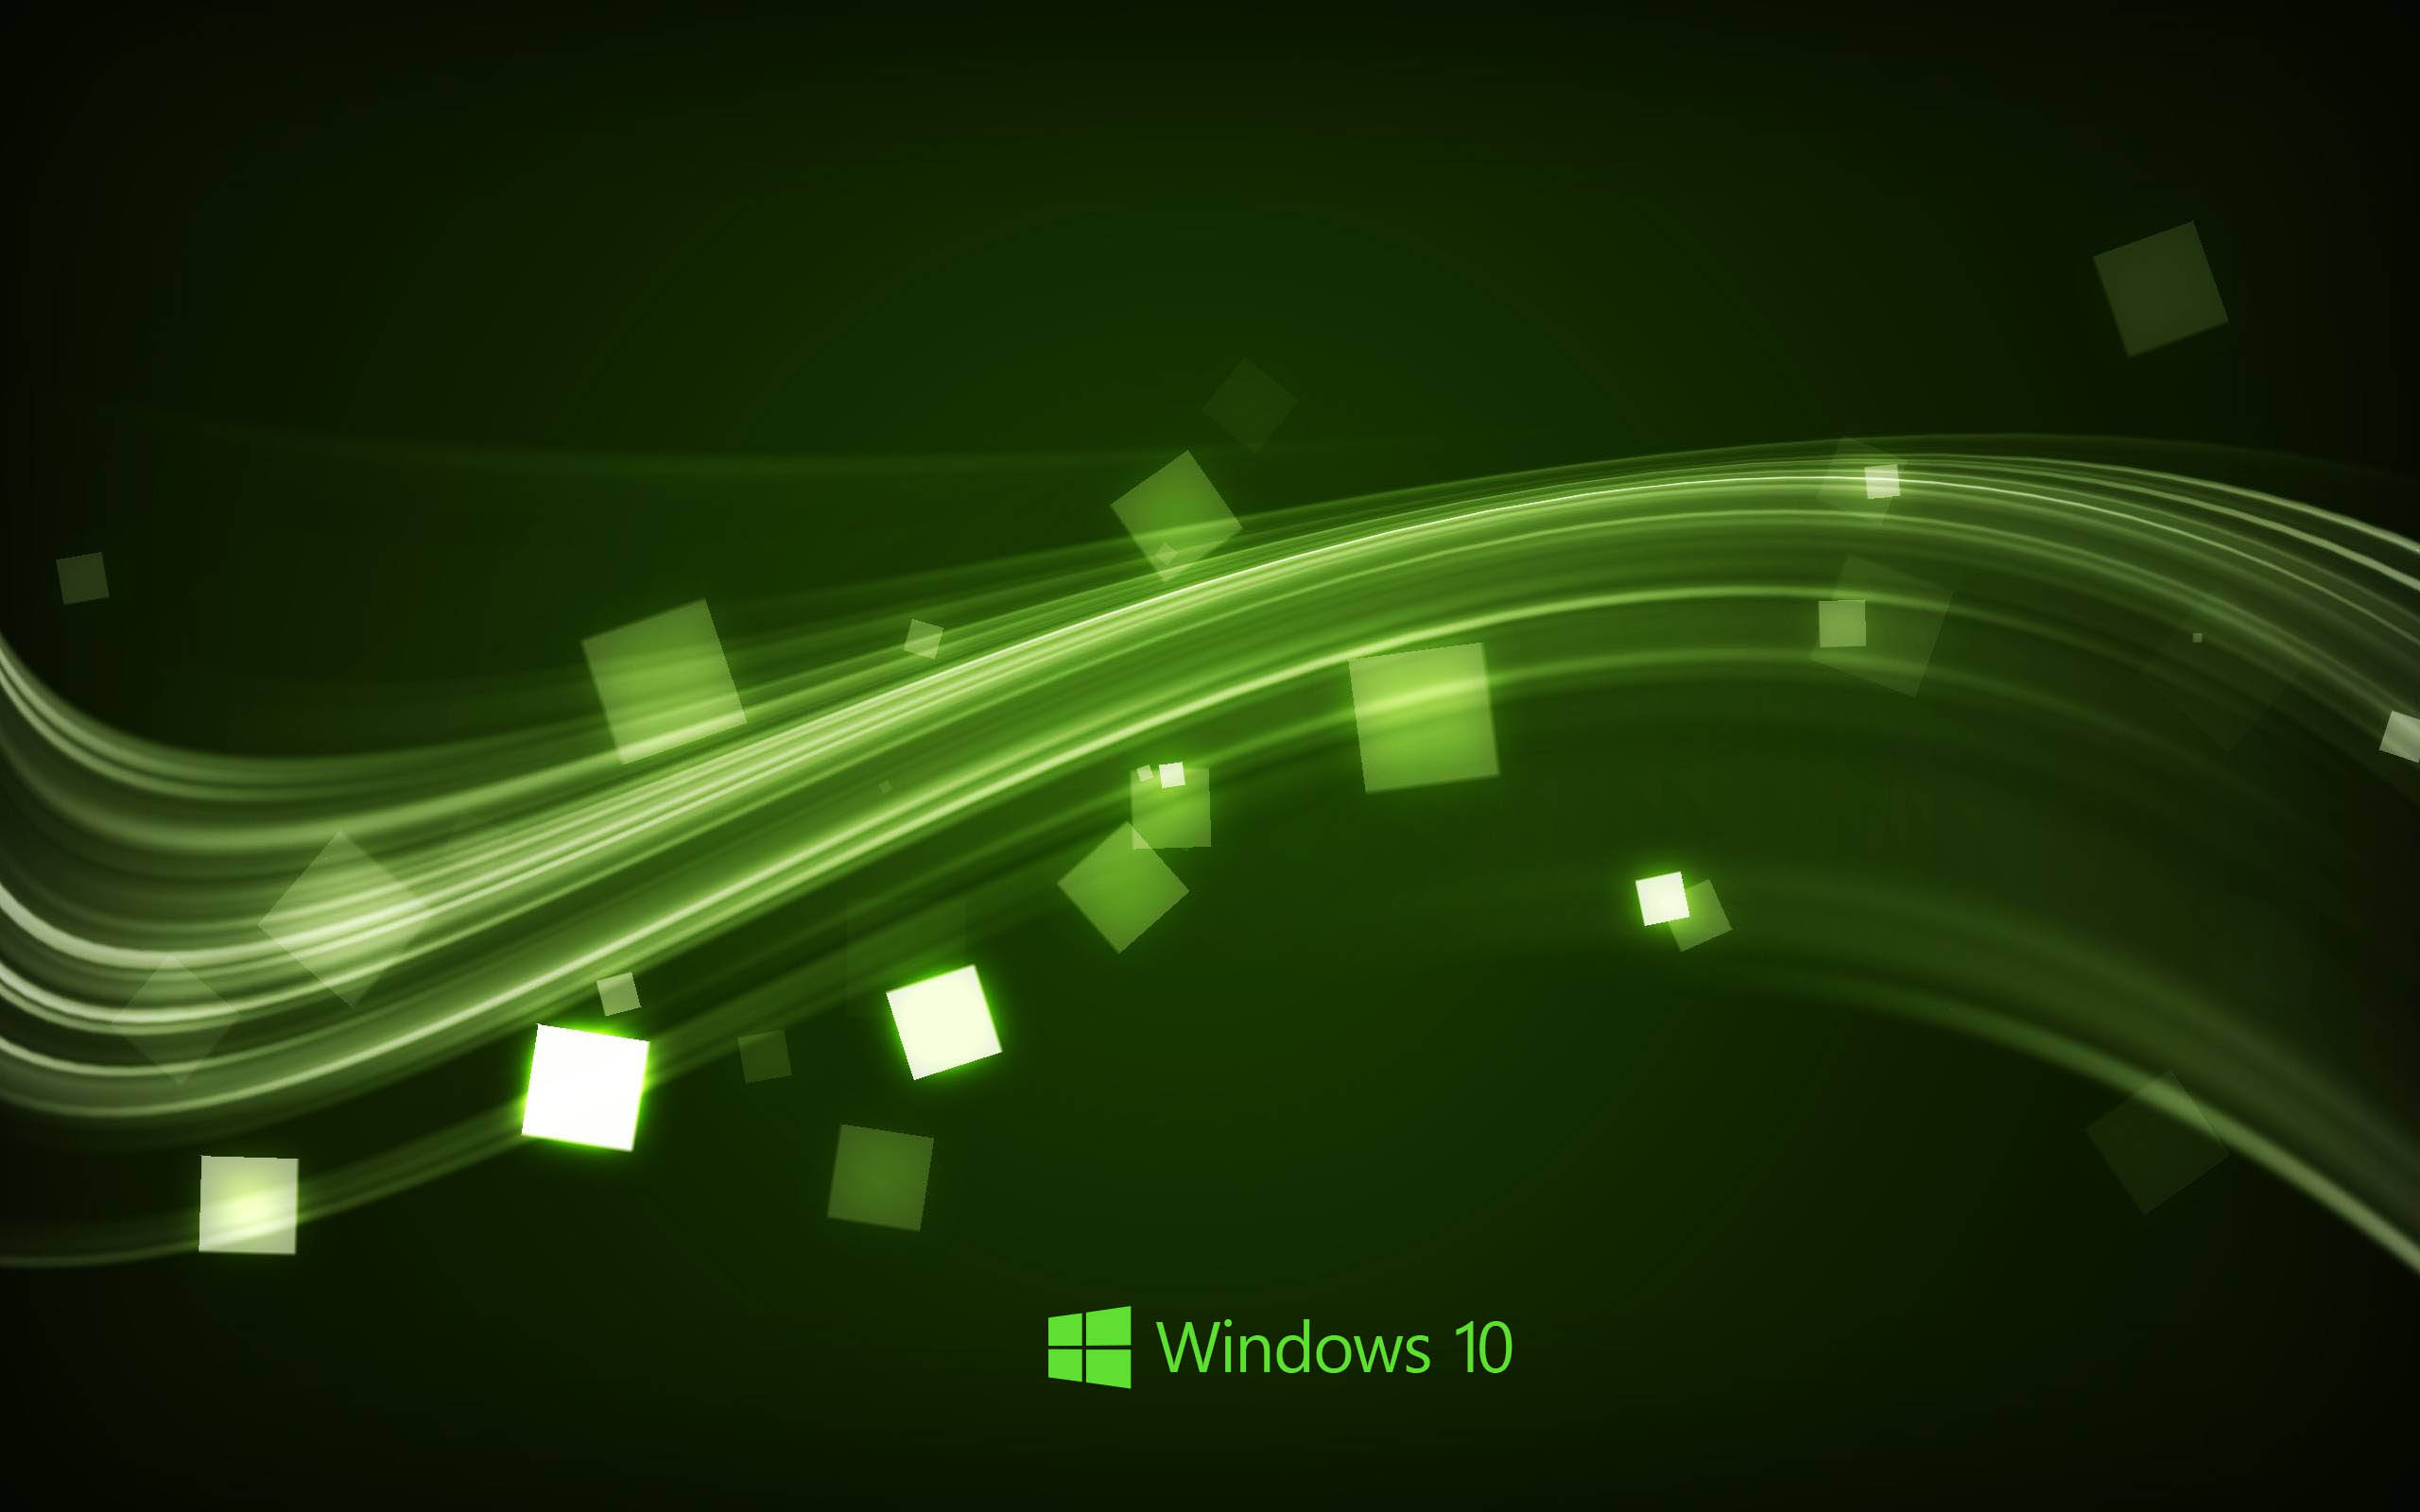 Lockscreen windows 10 wallpaper